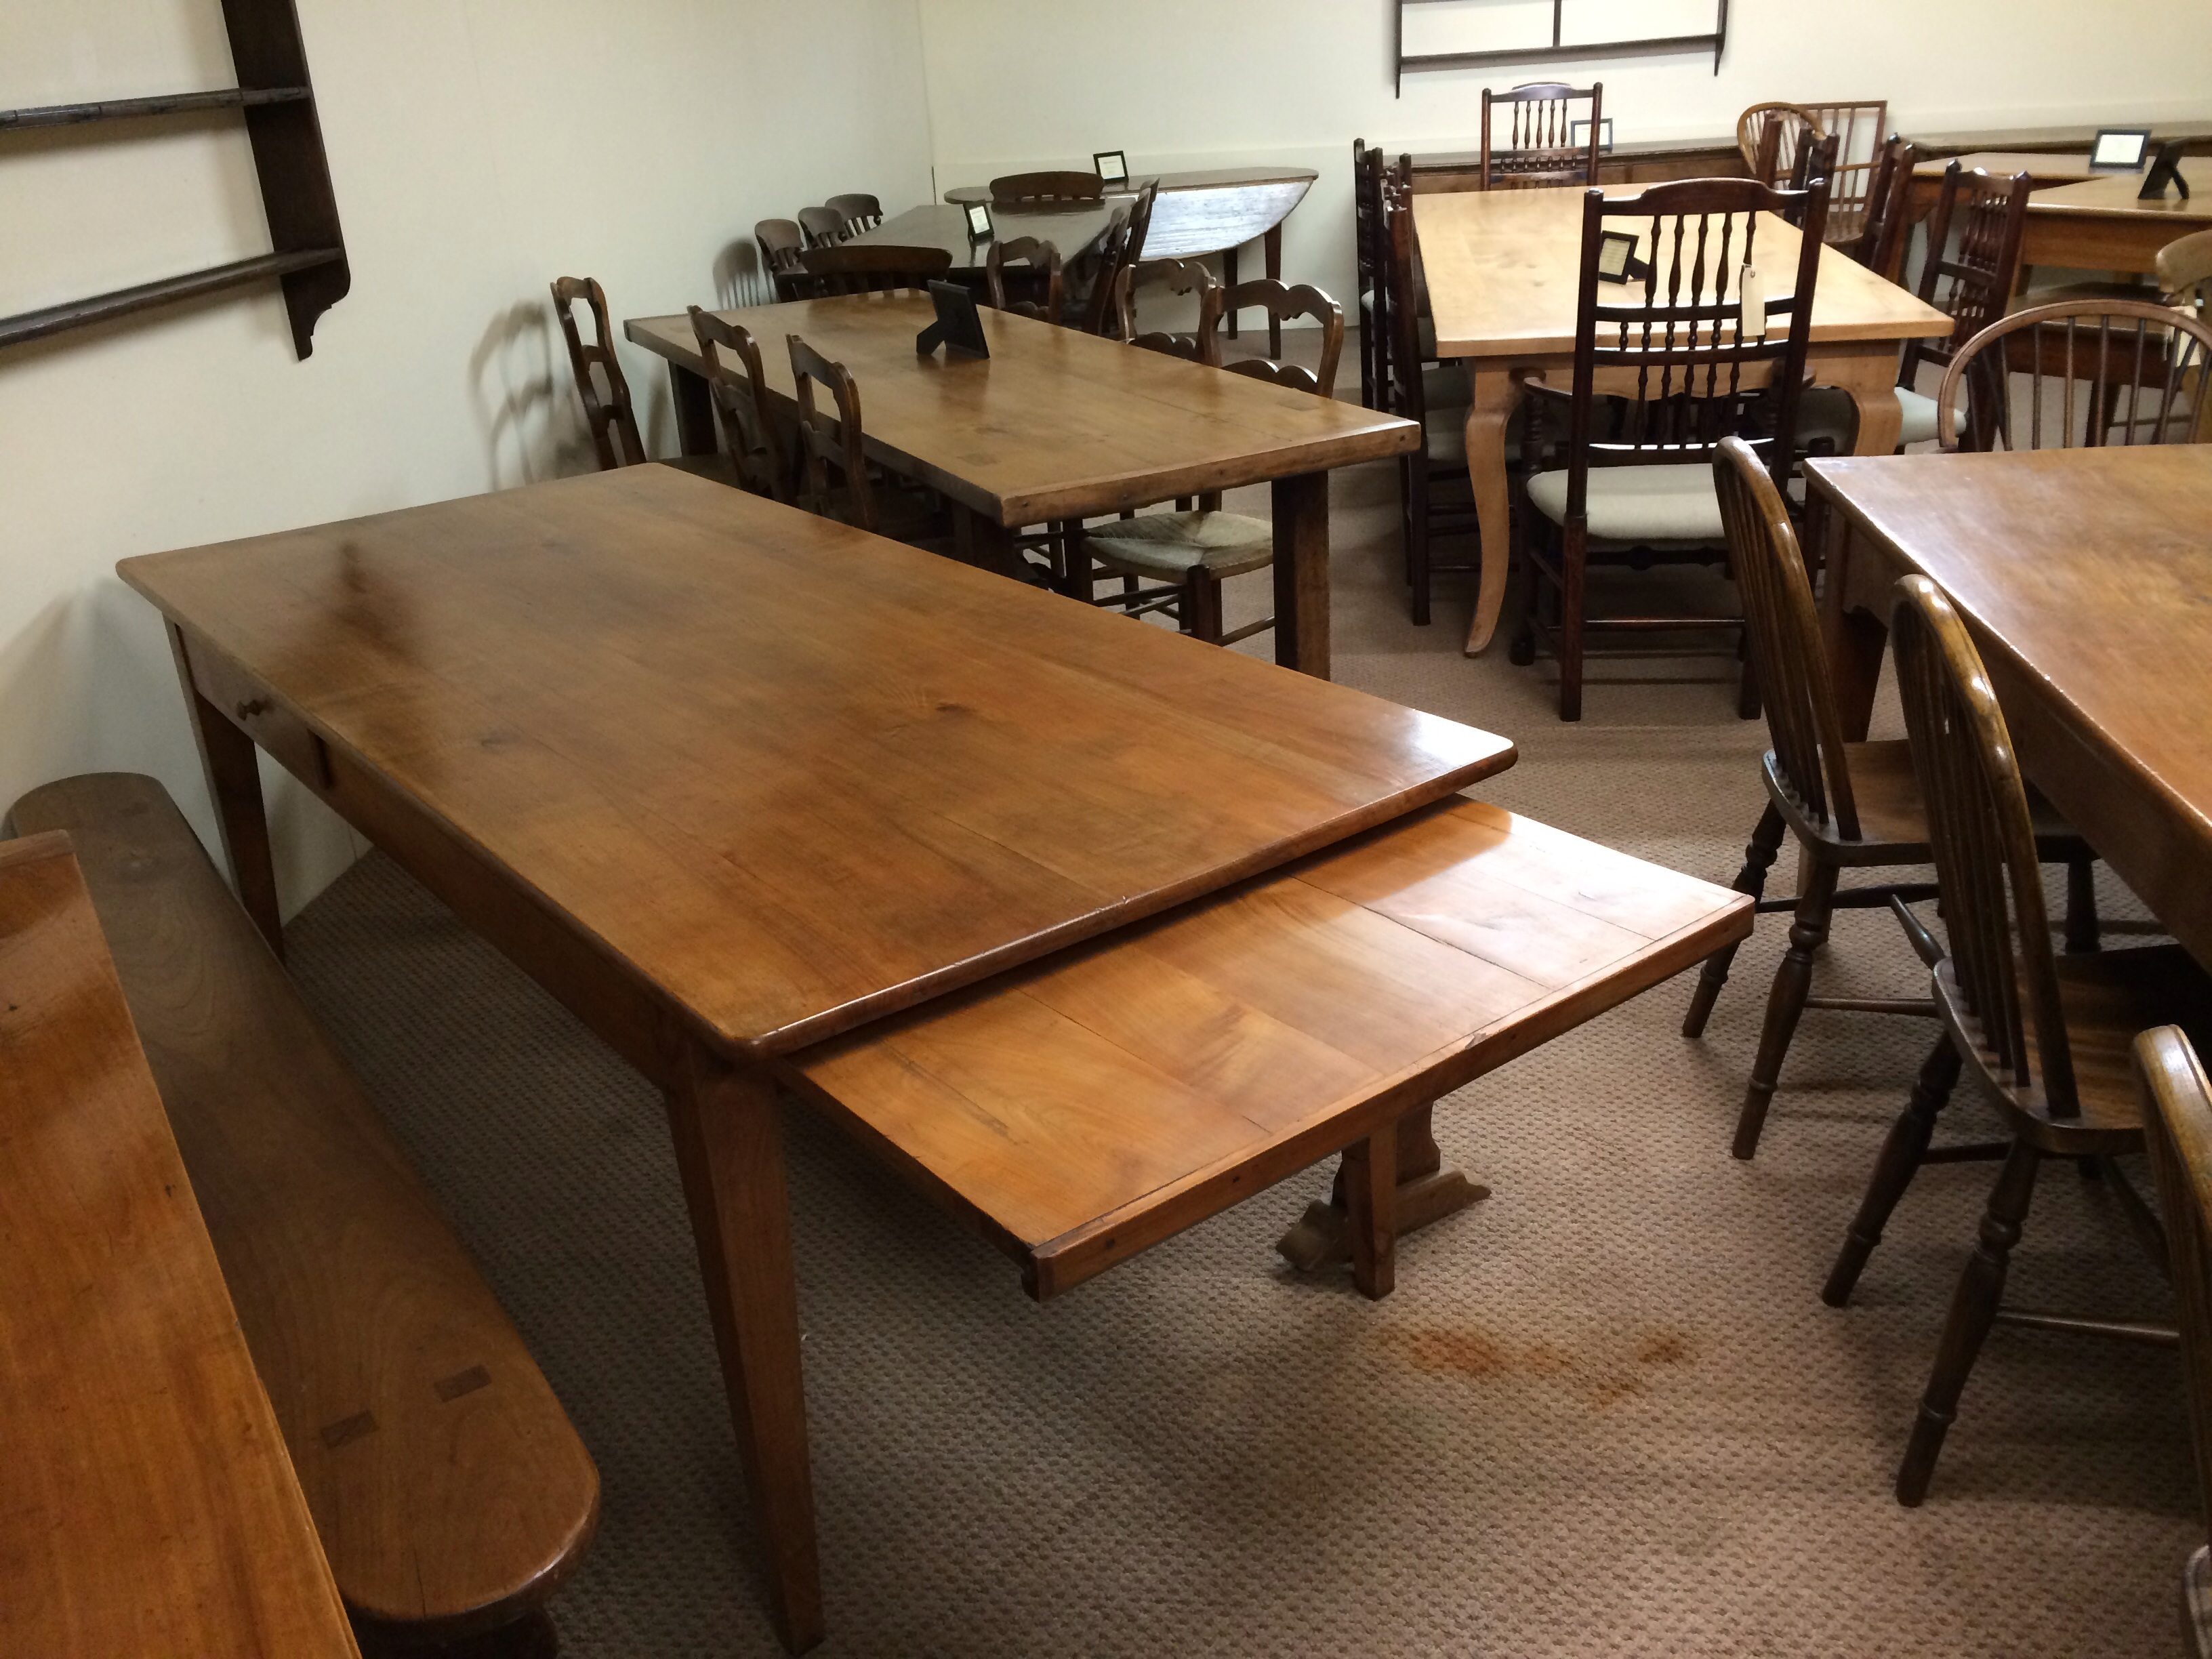 Antique French Cherry farmhouse table